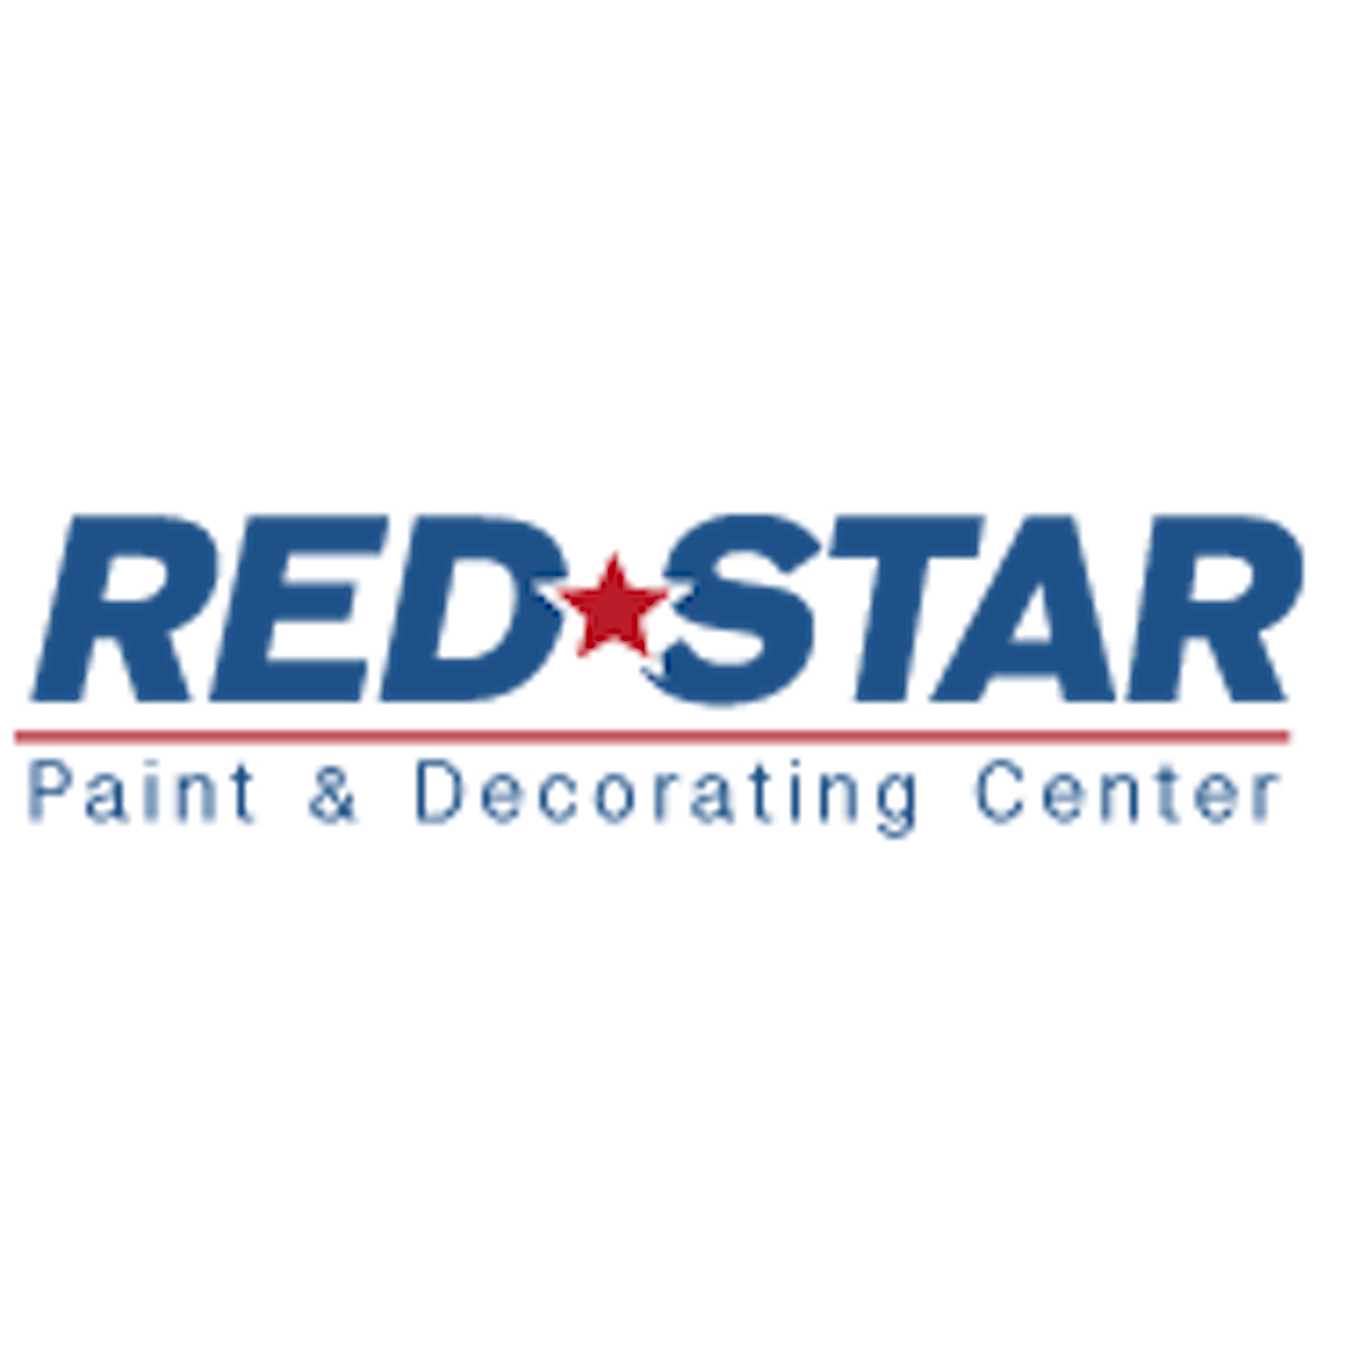 Red Star Paint & Decorating Center